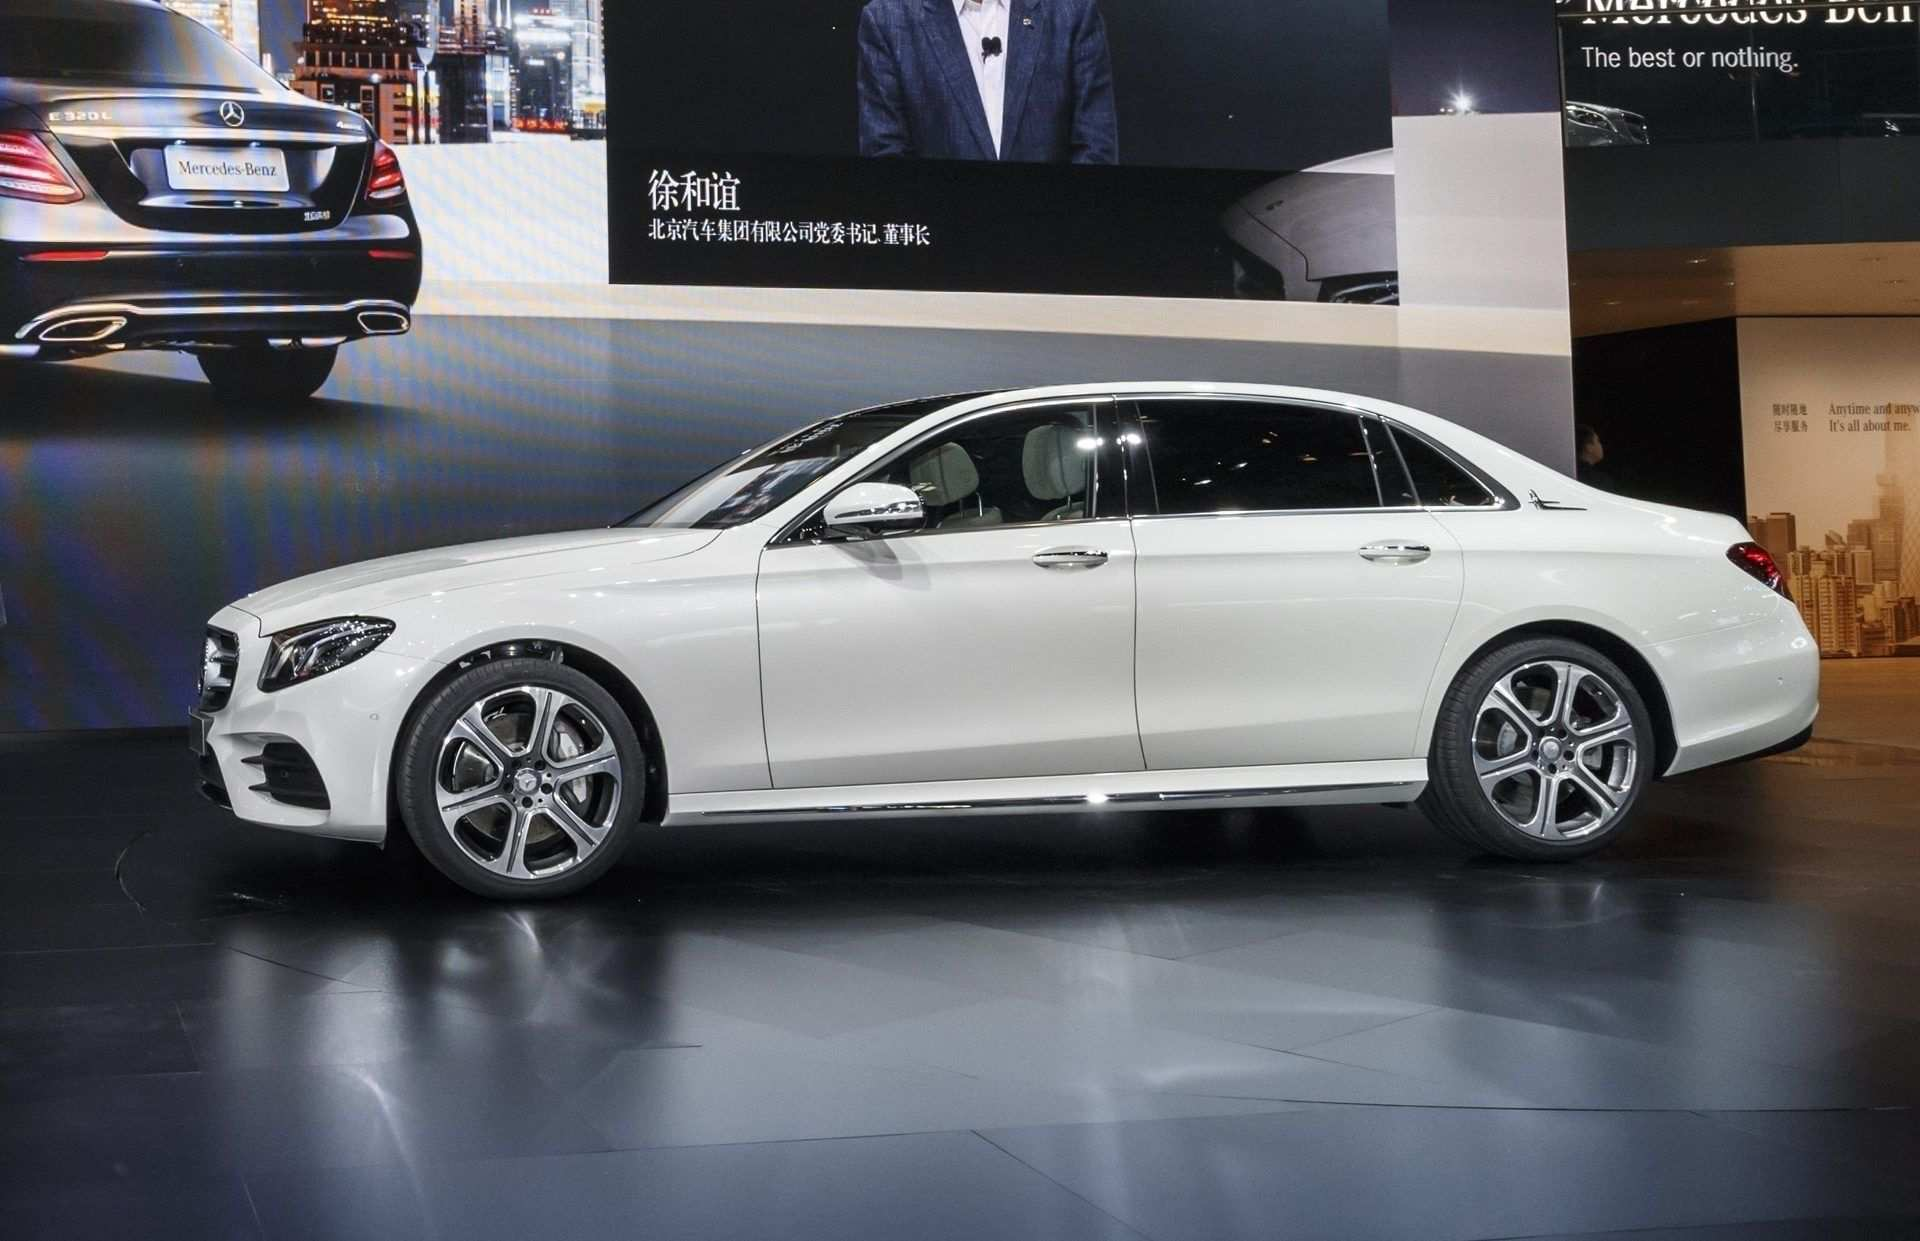 68 New New Mercedes A Class 2019 Price Uae First Drive Redesign by New Mercedes A Class 2019 Price Uae First Drive